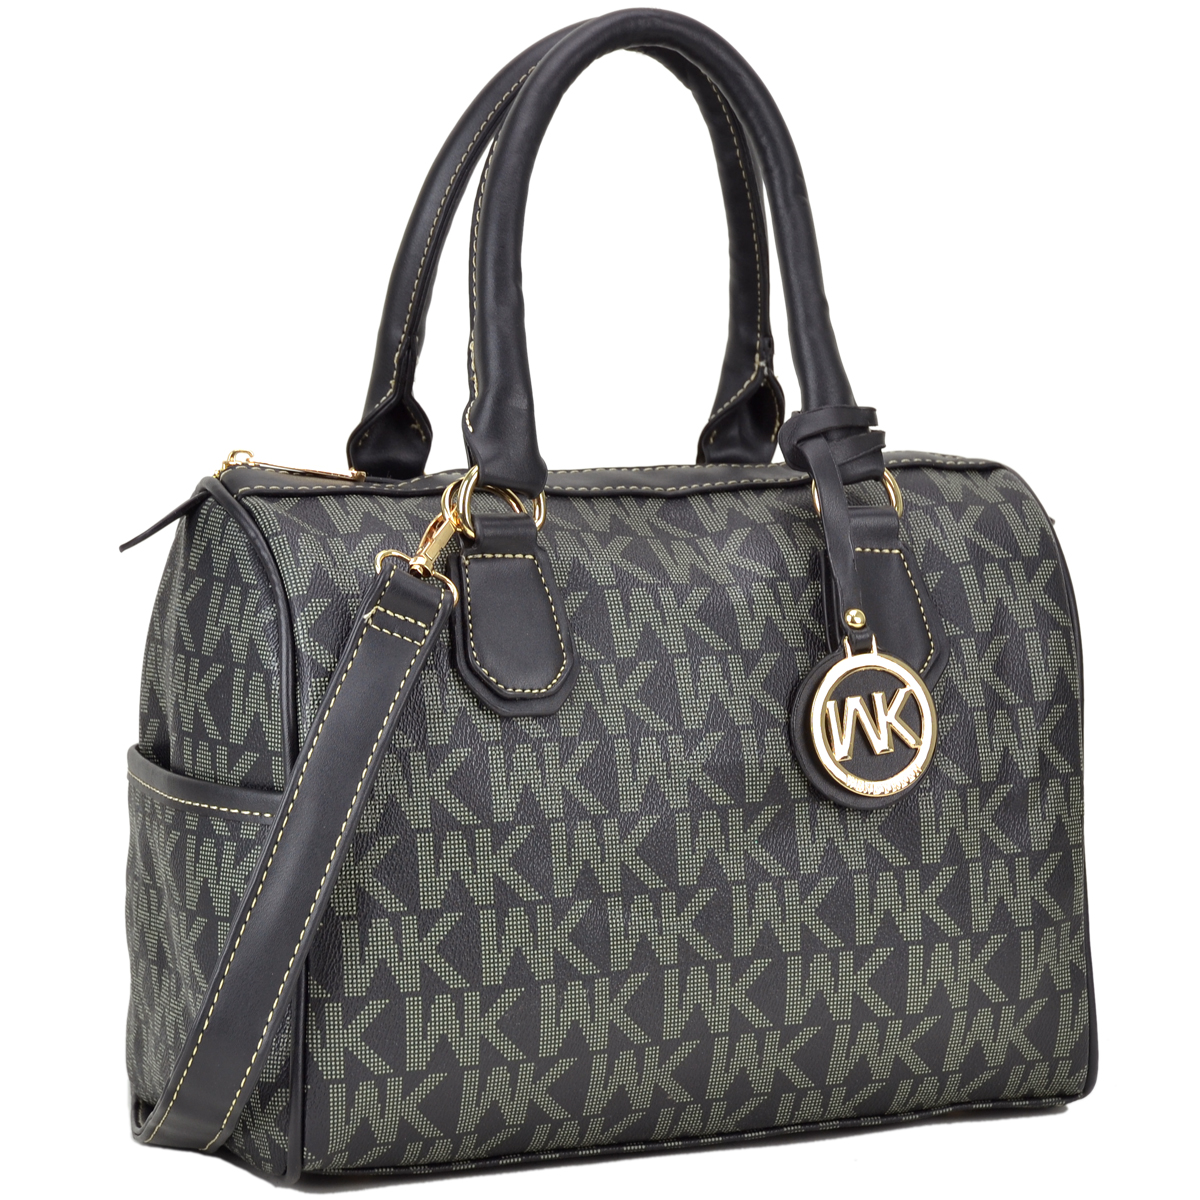 Monogram Imprint Faux Leather Medium Satchel with two side pockets